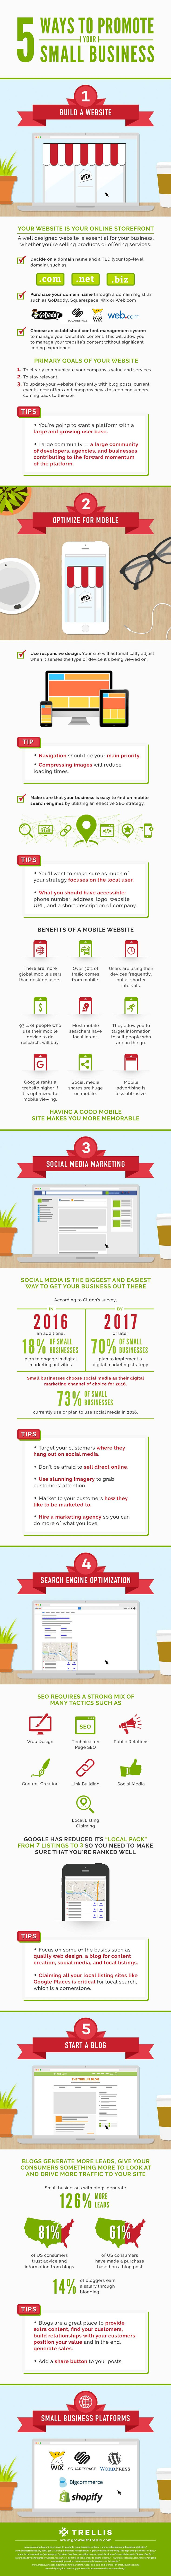 5 simple yet powerful online marketing tips for promoting your small business - infographic